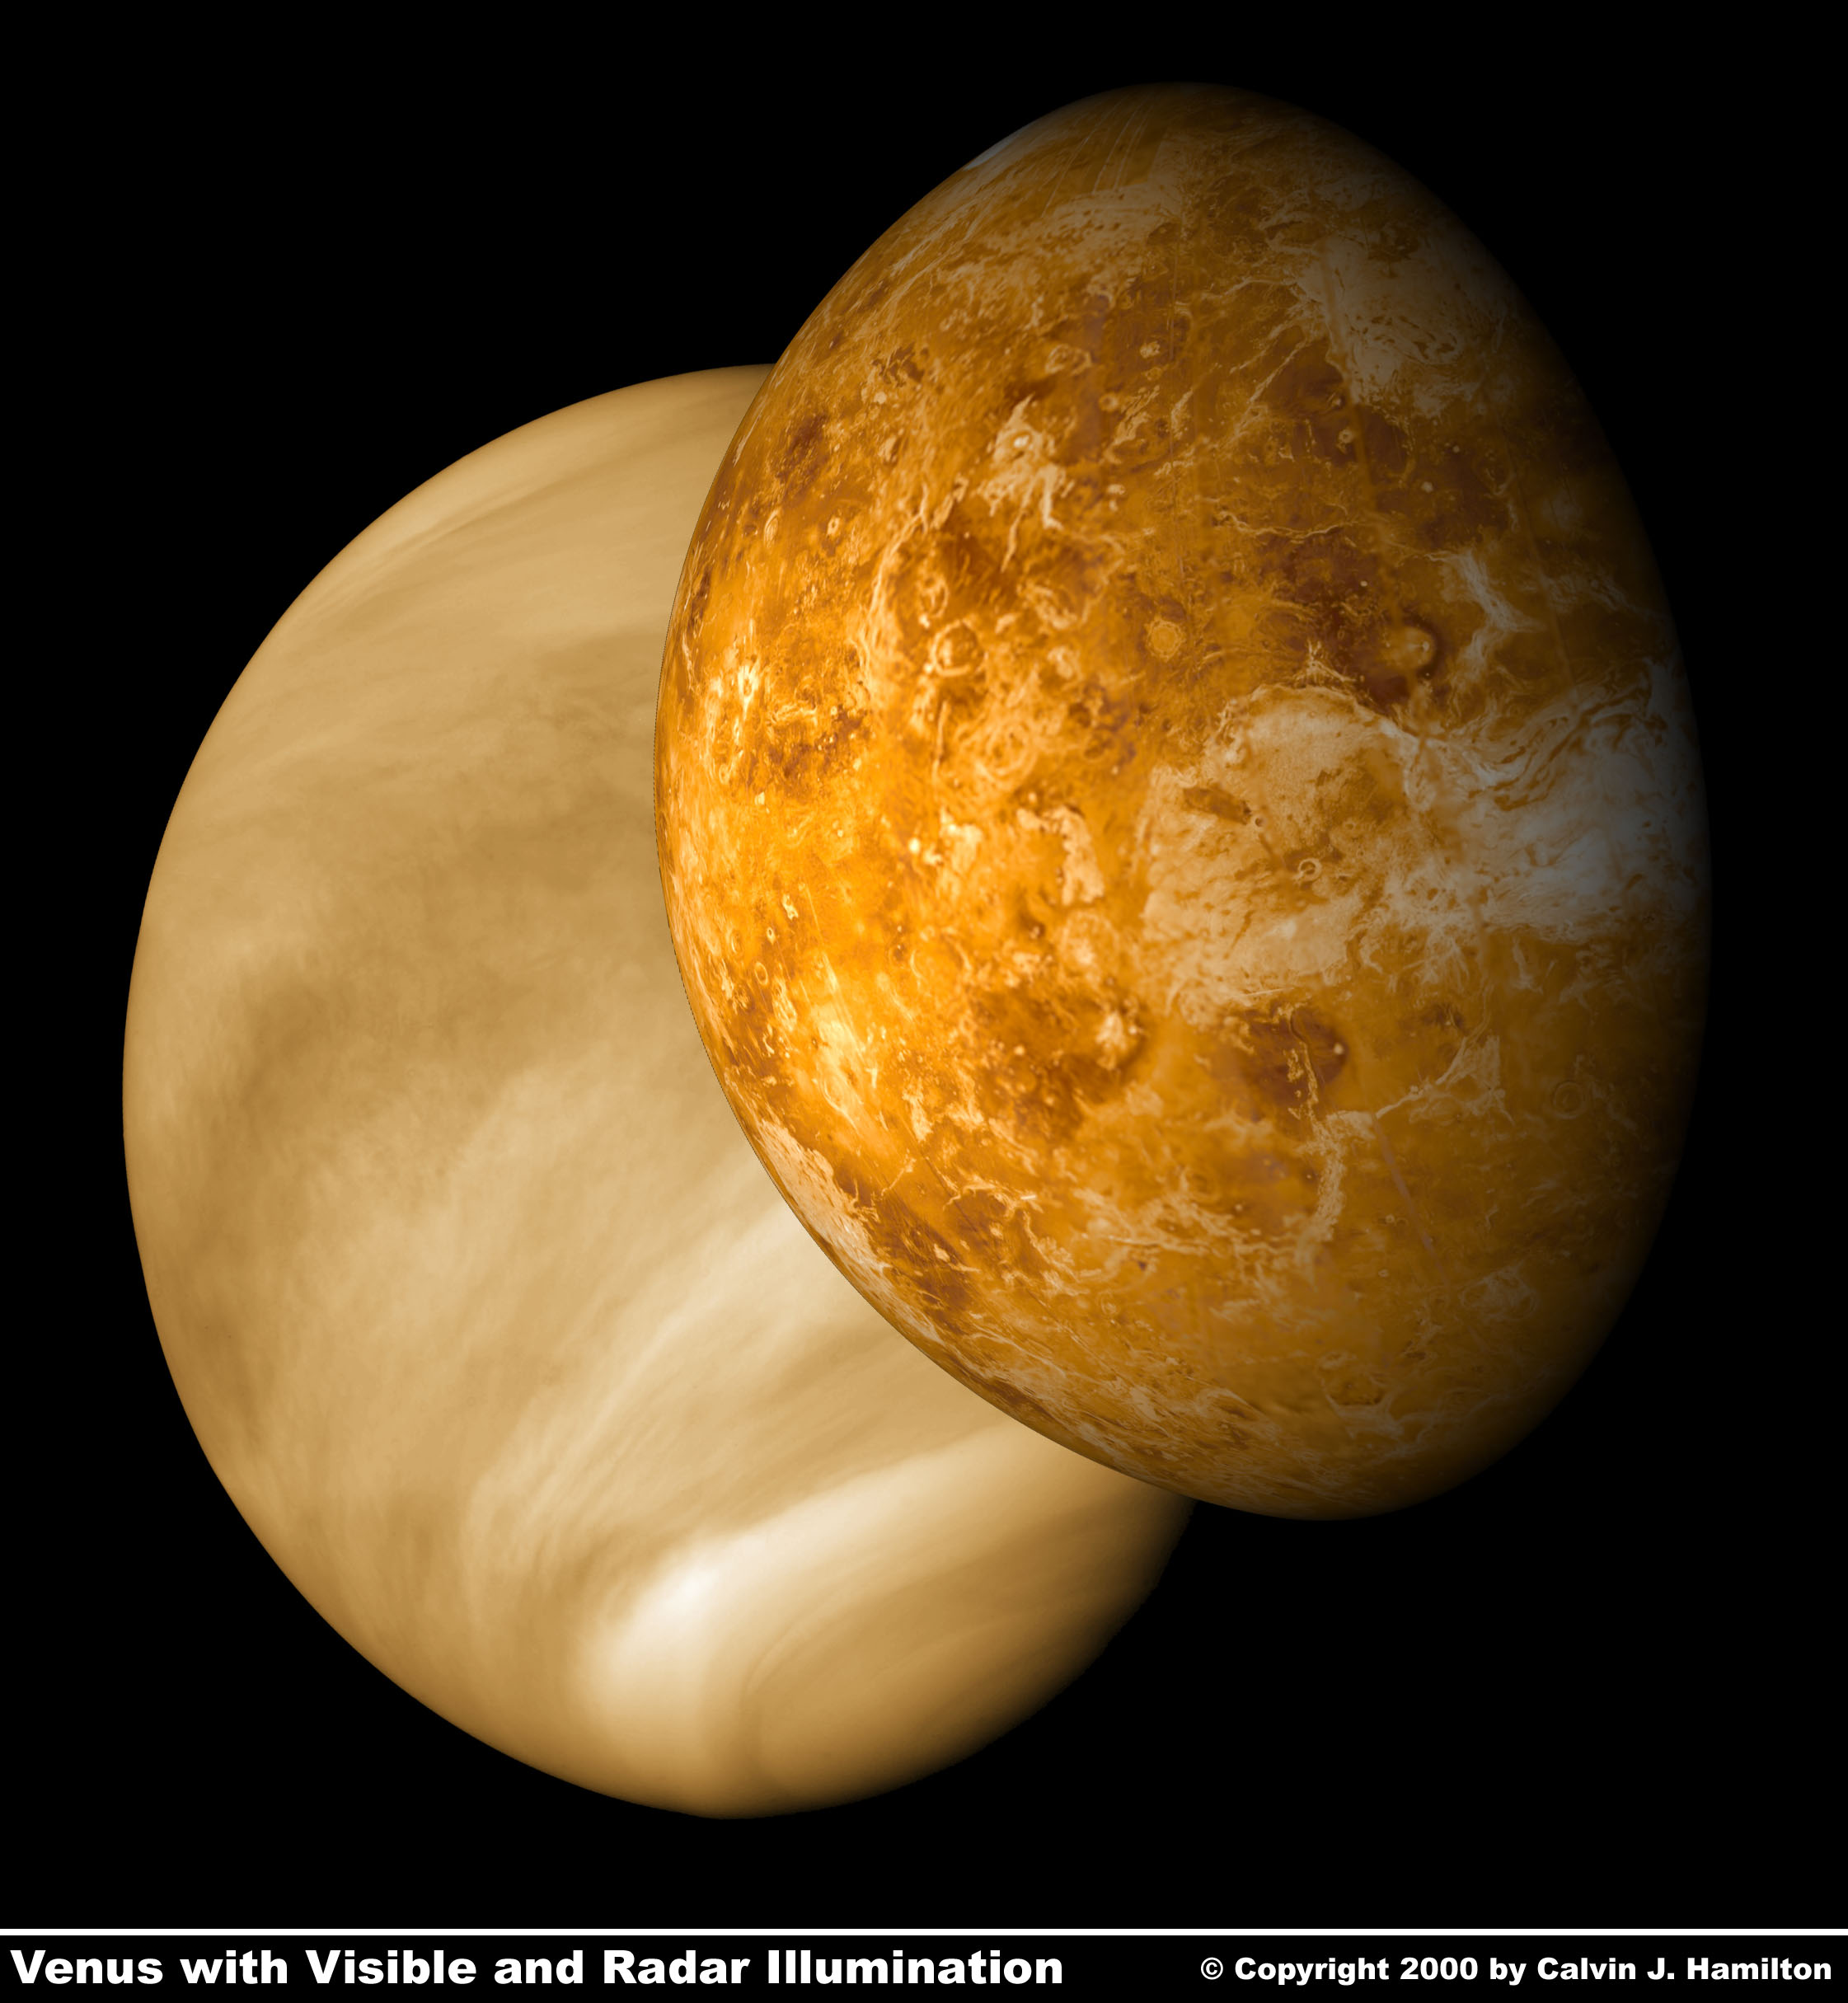 an overview of the planet venus Overview the planet venus is the second planet from the sun in the solar system it is one of the four terrestrial planets, with a dense, thick atmosphere and a.